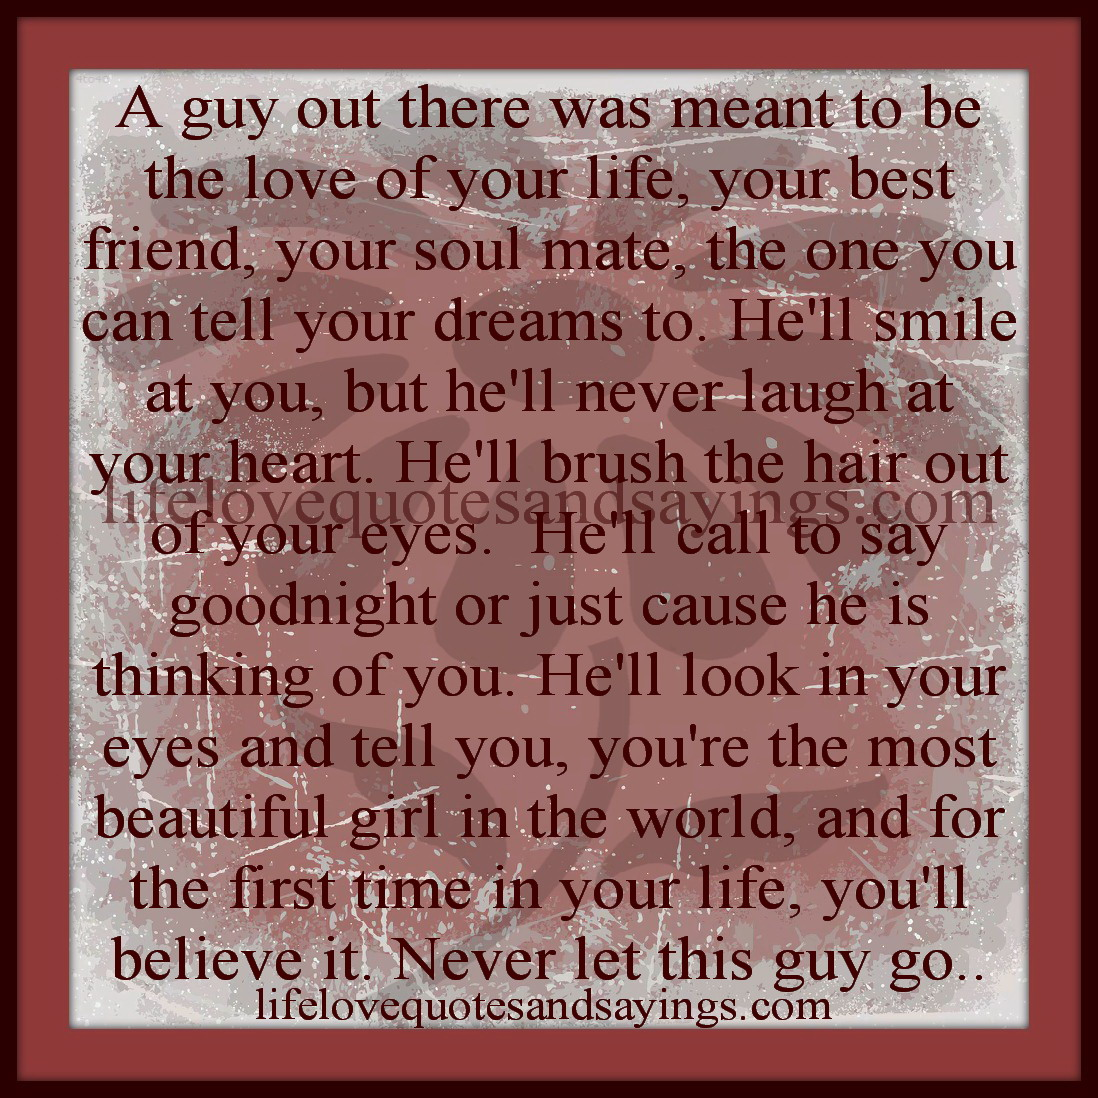 Quotes About Loving Your Best Guy Friend. QuotesGram